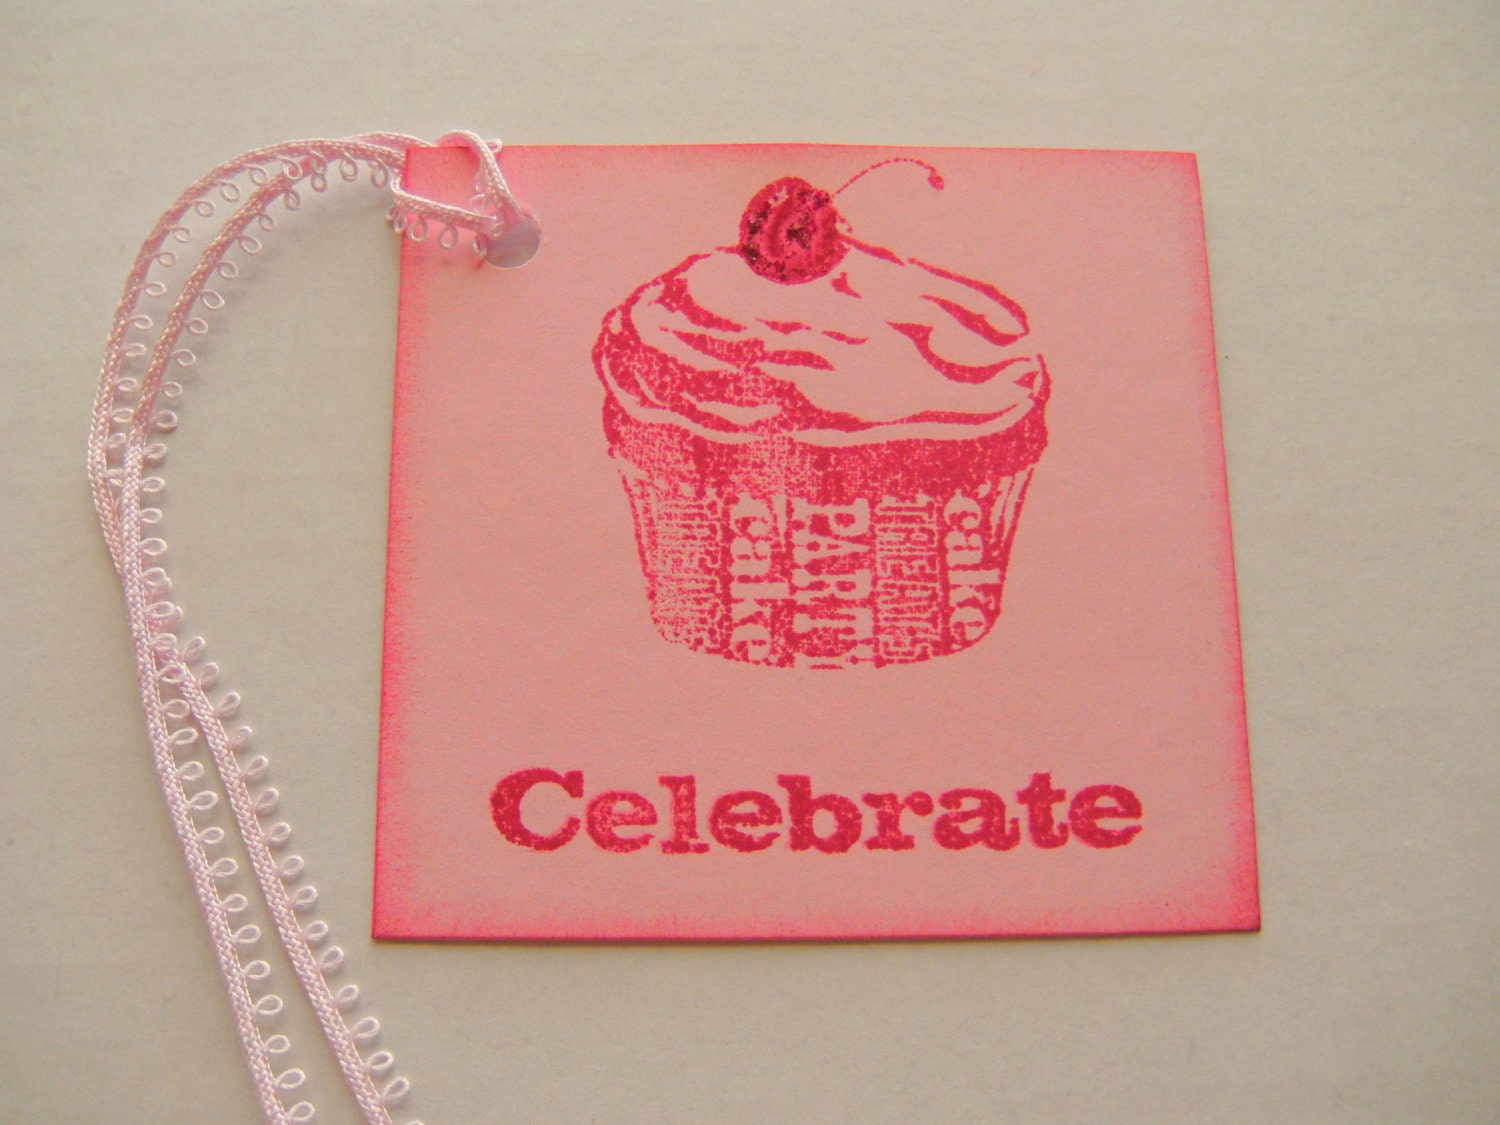 Celebrate Birthday Cupcake Gift Tag Set - creativedesigns